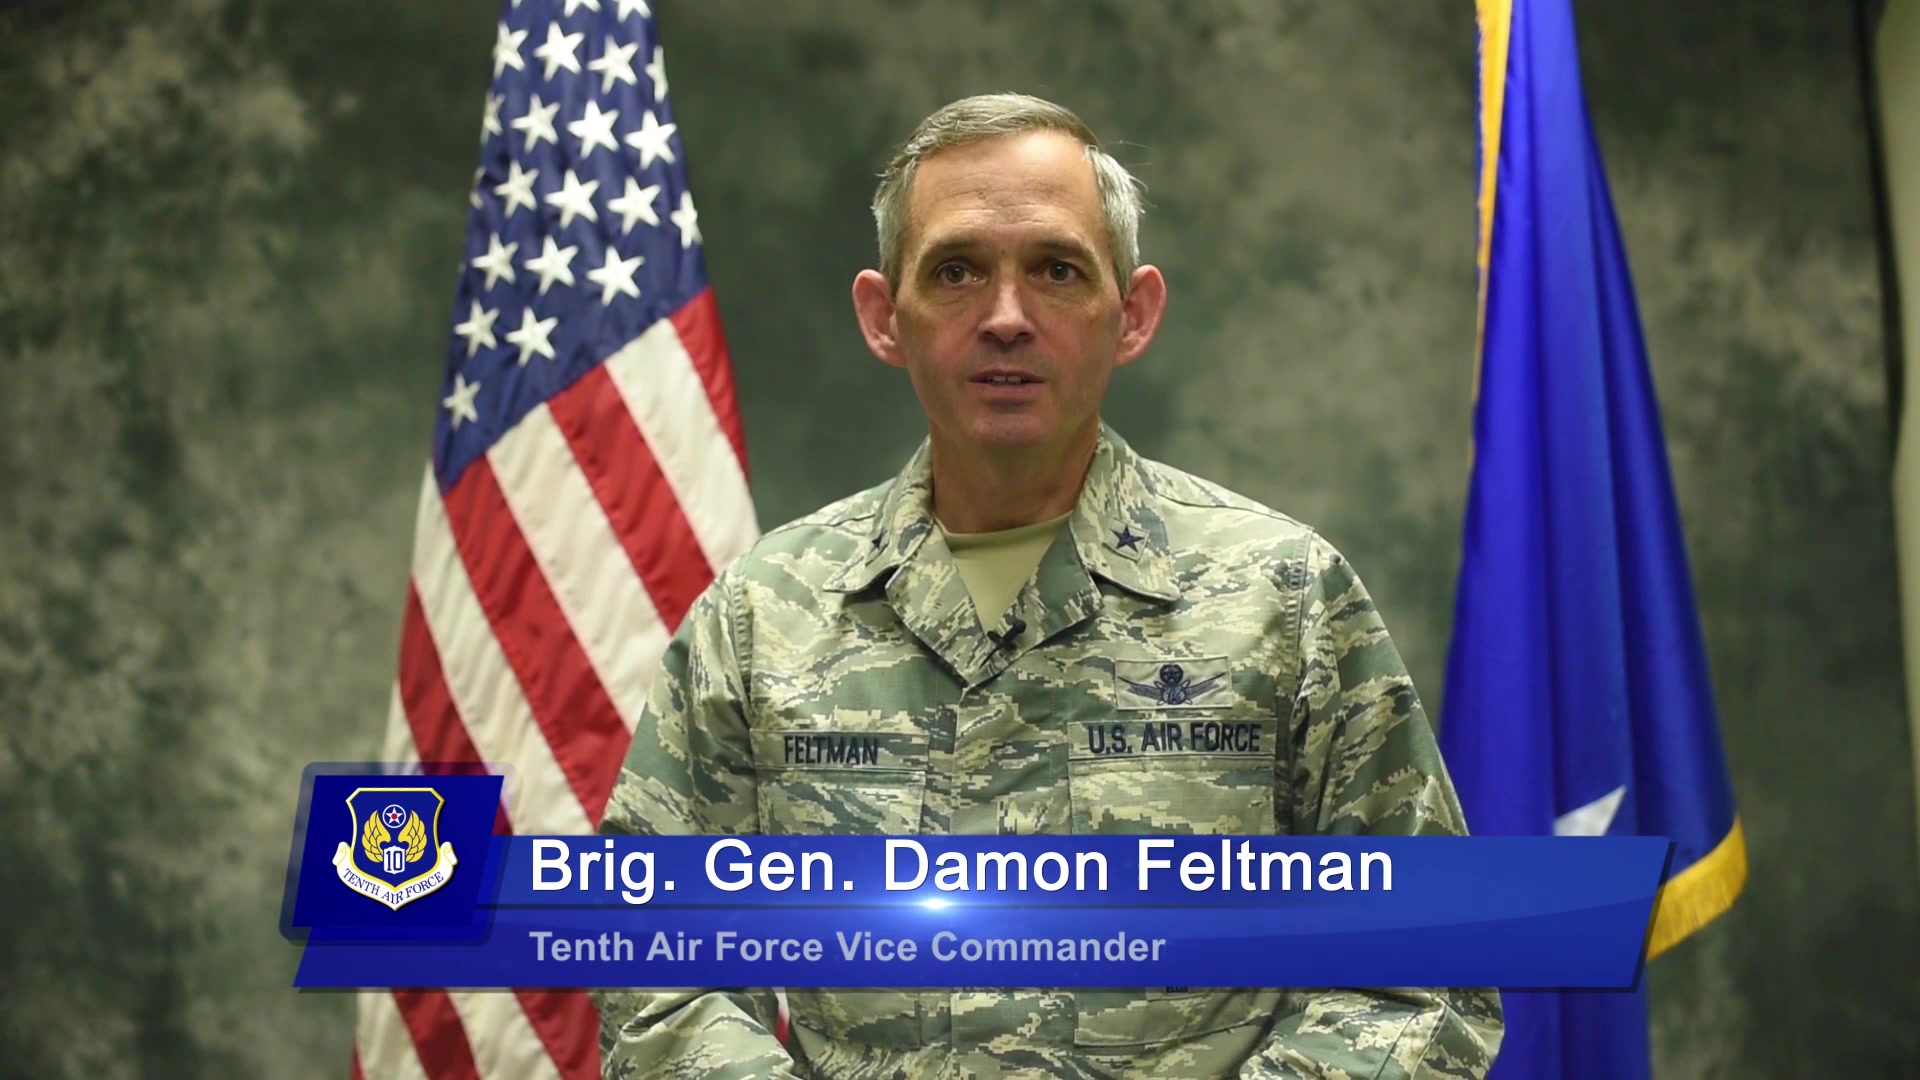 For Tenth Air Force's July commentary, Brig. Gen. Feltman discusses Space and Cyberspace mission sets.